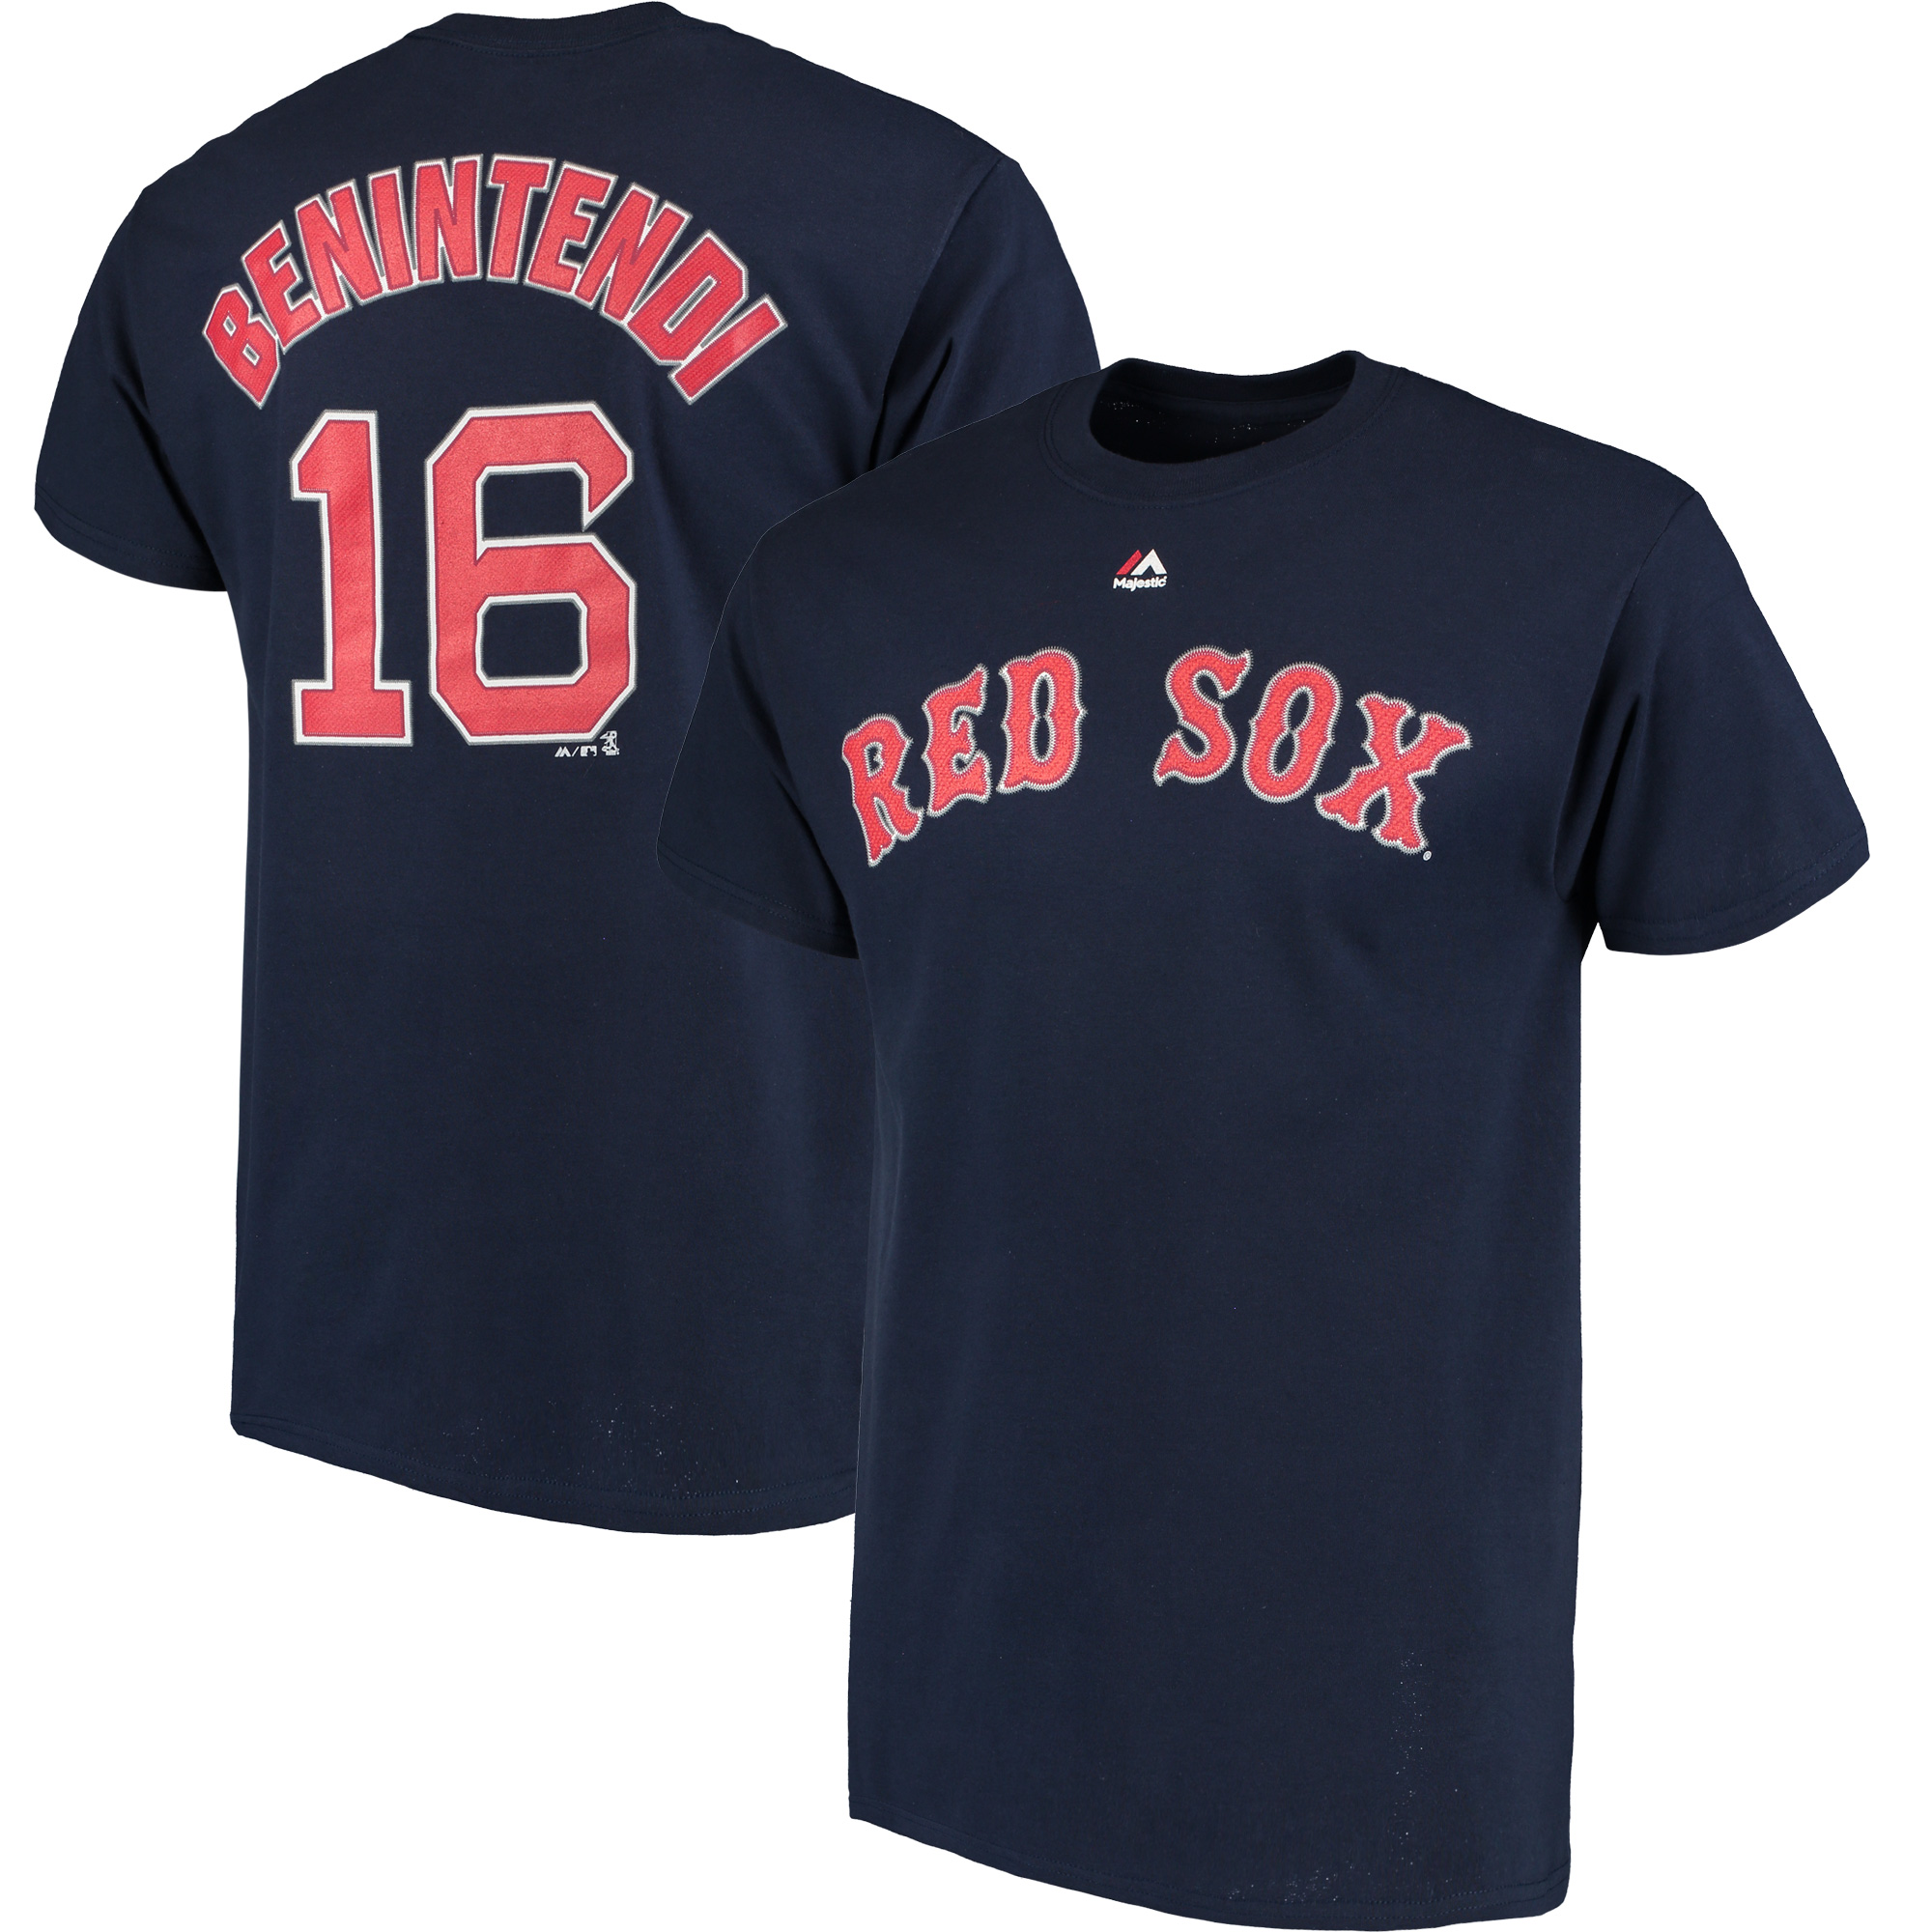 Andrew Benintendi Boston Red Sox Majestic Official Name & Number T-Shirt - Navy